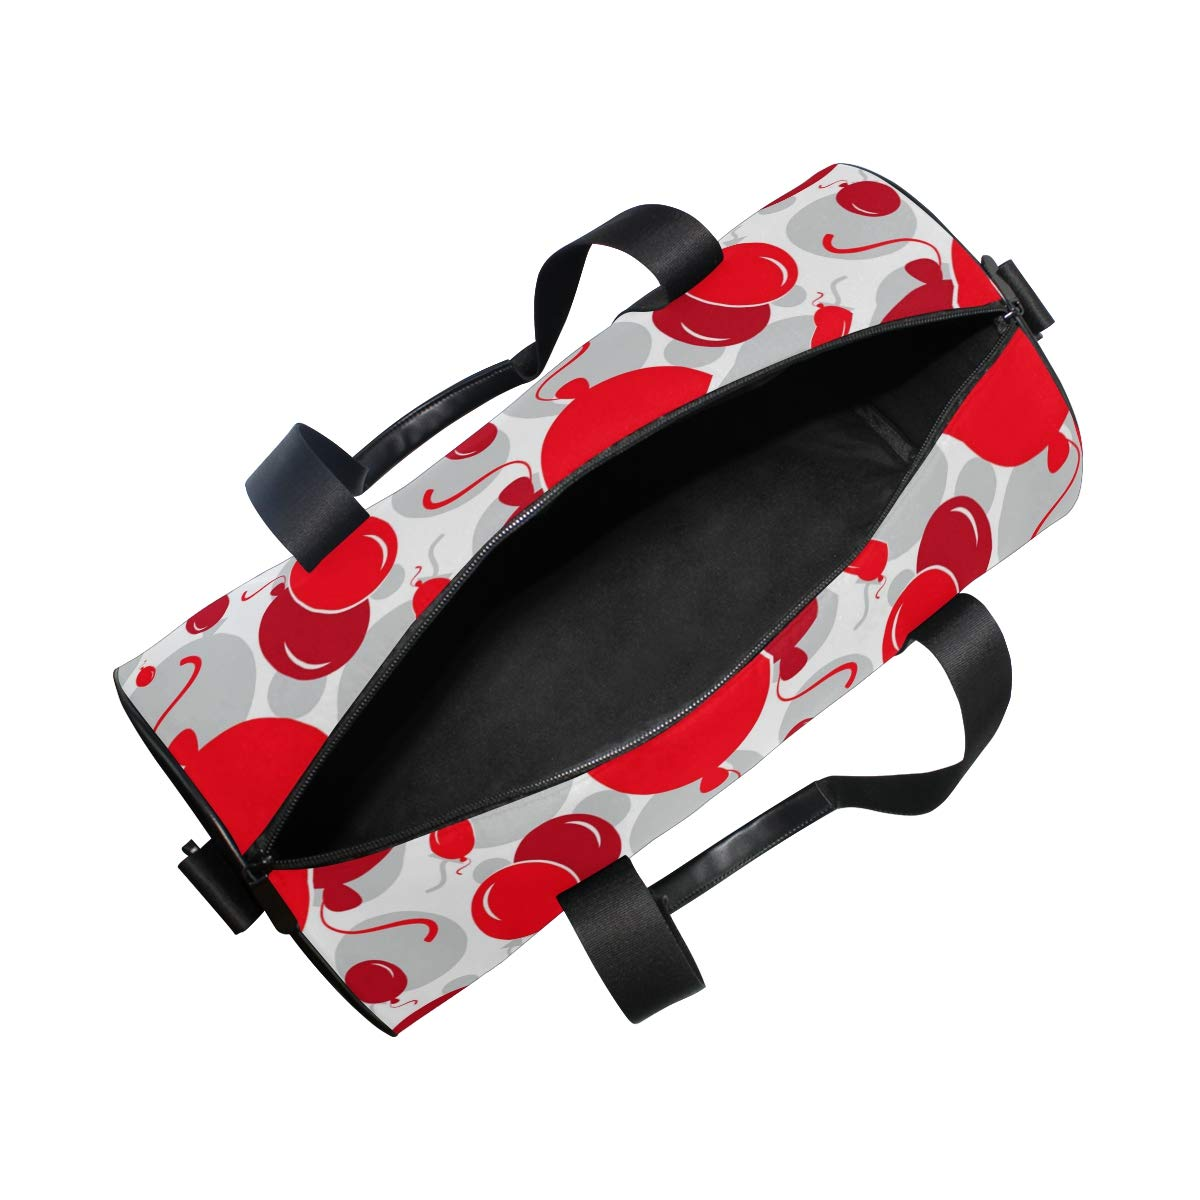 Sports Gym Duffel Barrel Bag Red Balloons Happiness Travel Luggage Handbag for Men Women